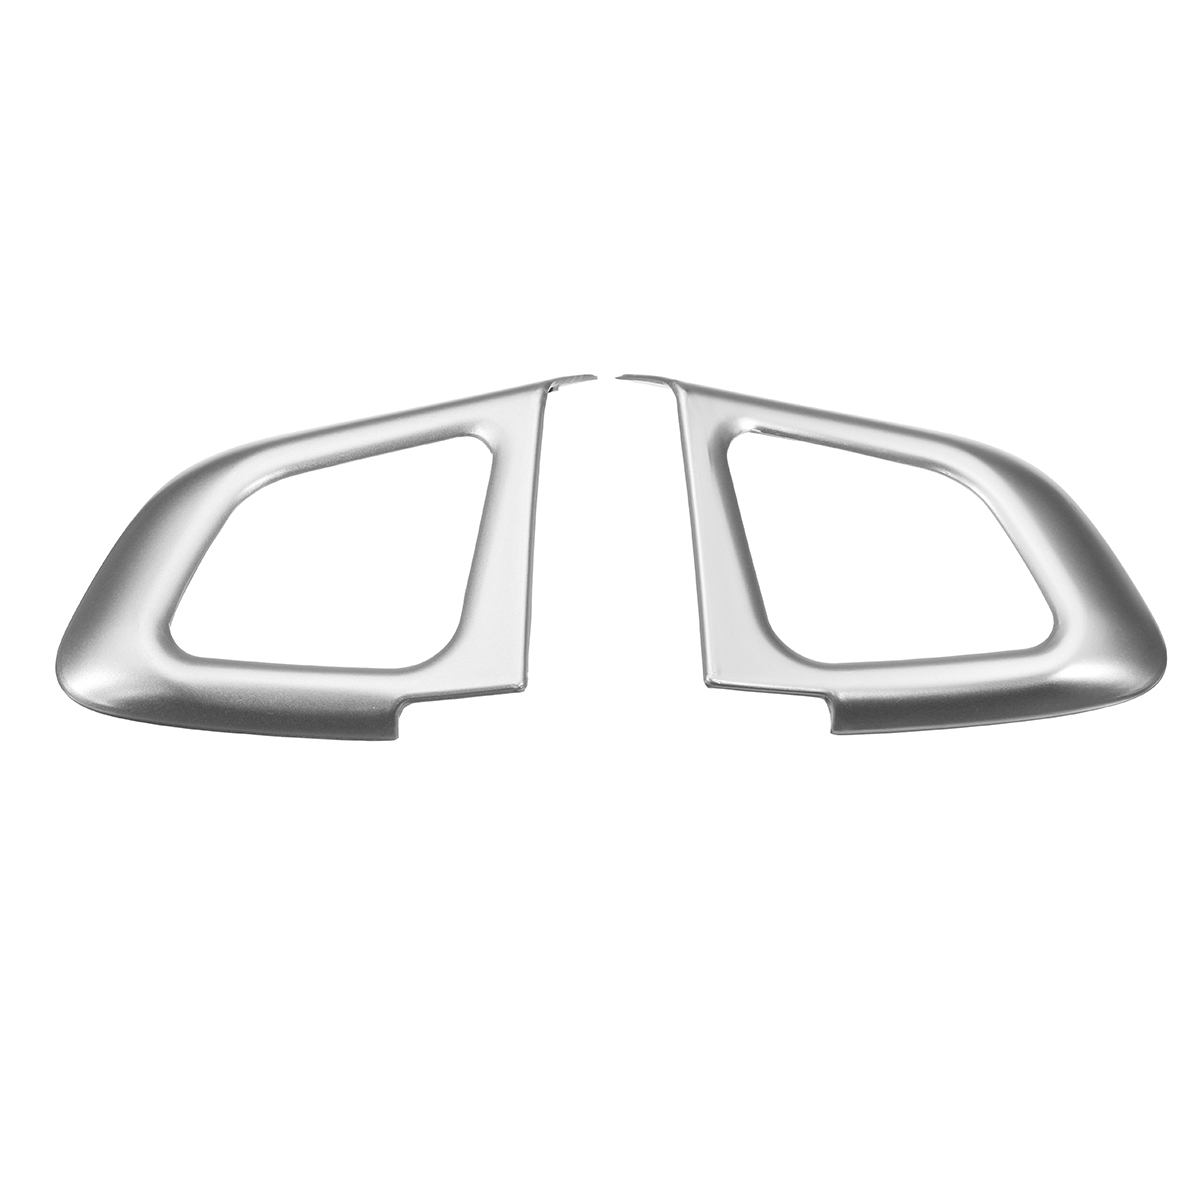 1Pair Car Interior Steering Wheel Button Frame Trim Cover  Chrome Decoration For Range Rover For Land Rover Evoque 2012-2016